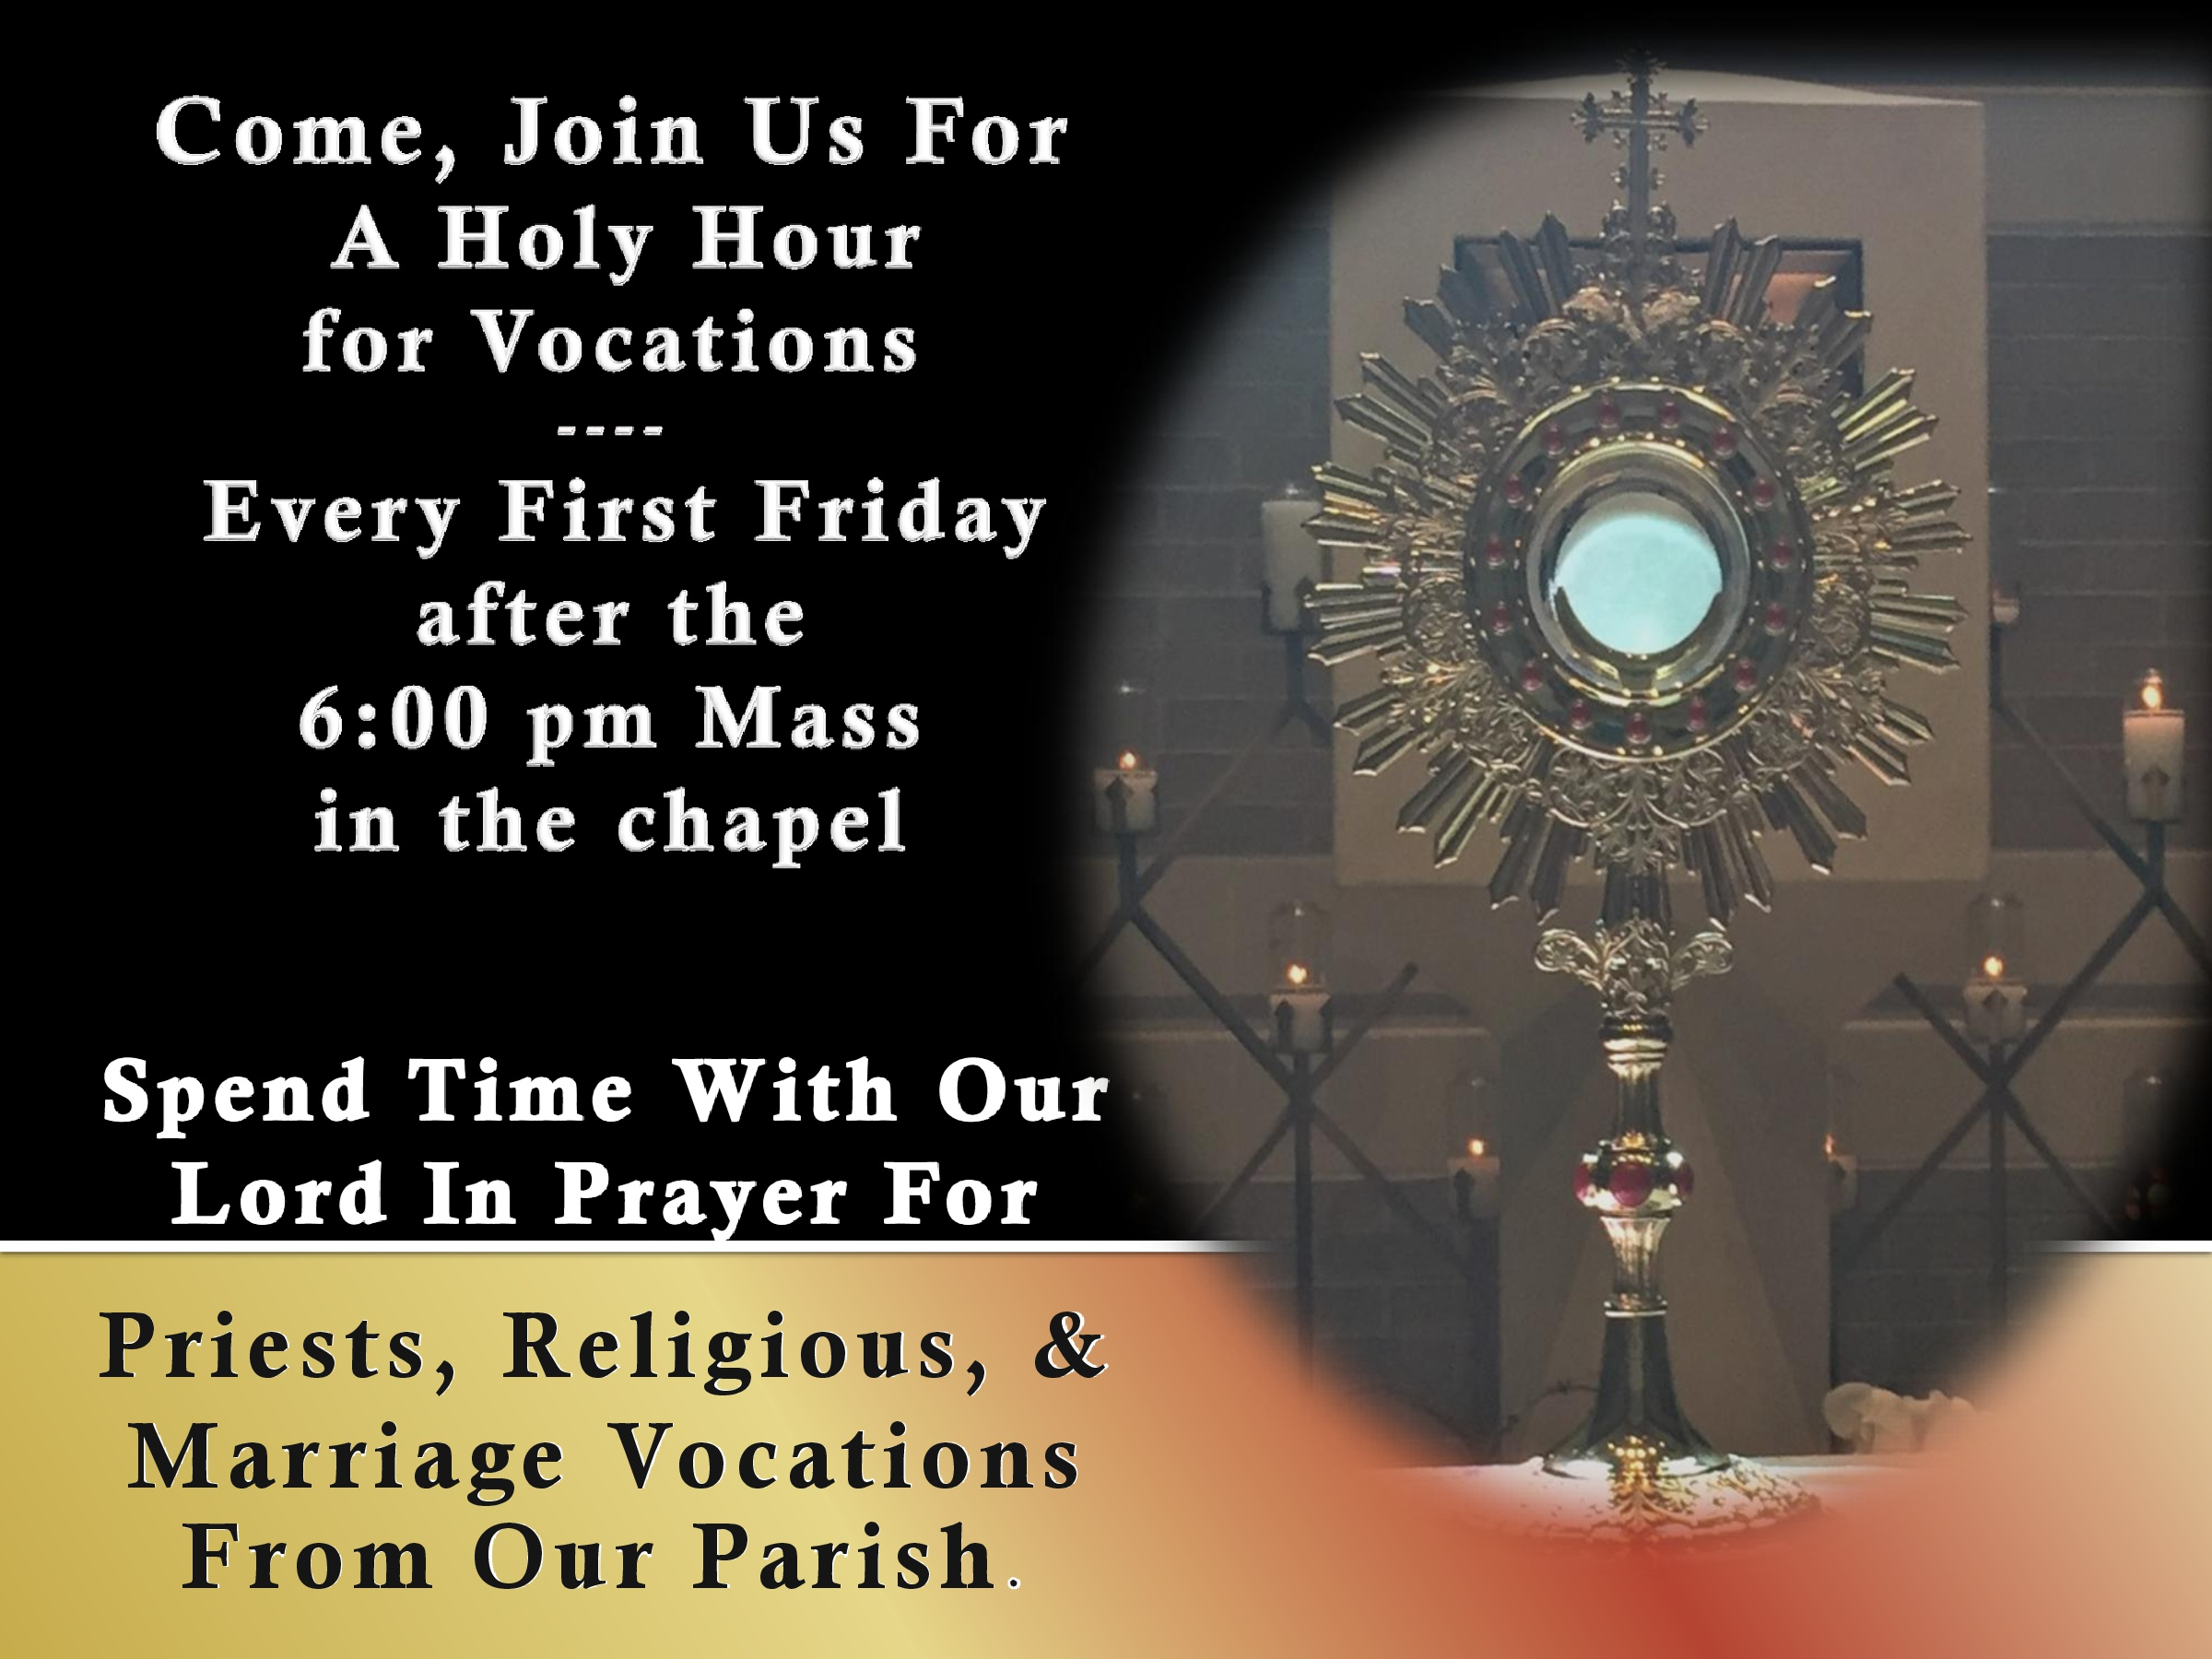 Vocations Holy Hour First Friday Announcement 8.24.19 digital display.jpg